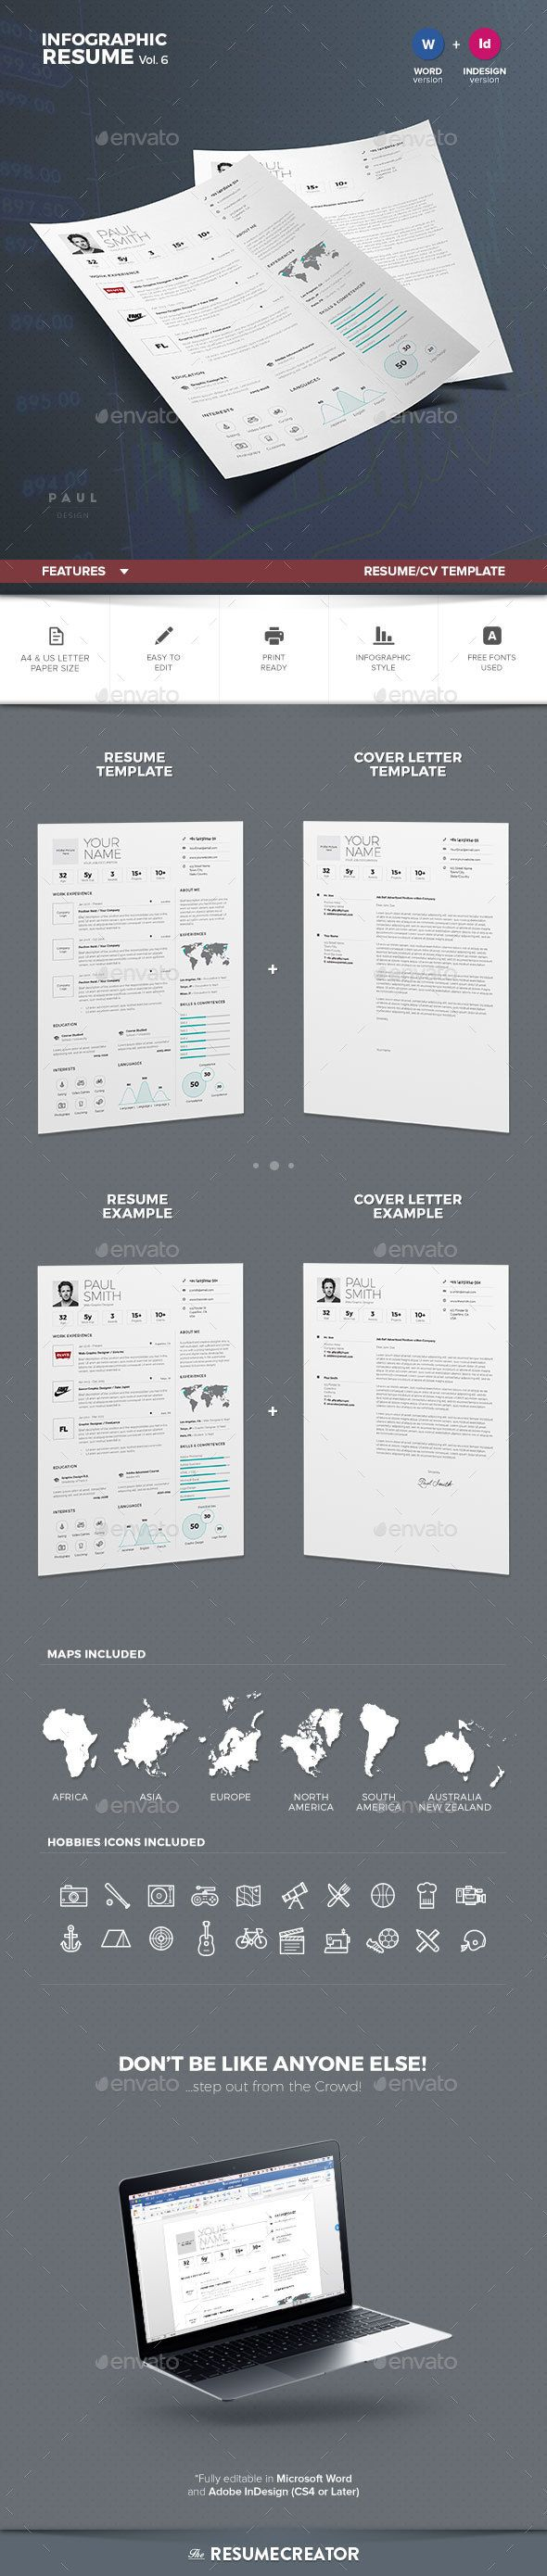 Best Killer Resume Template  Design Images On